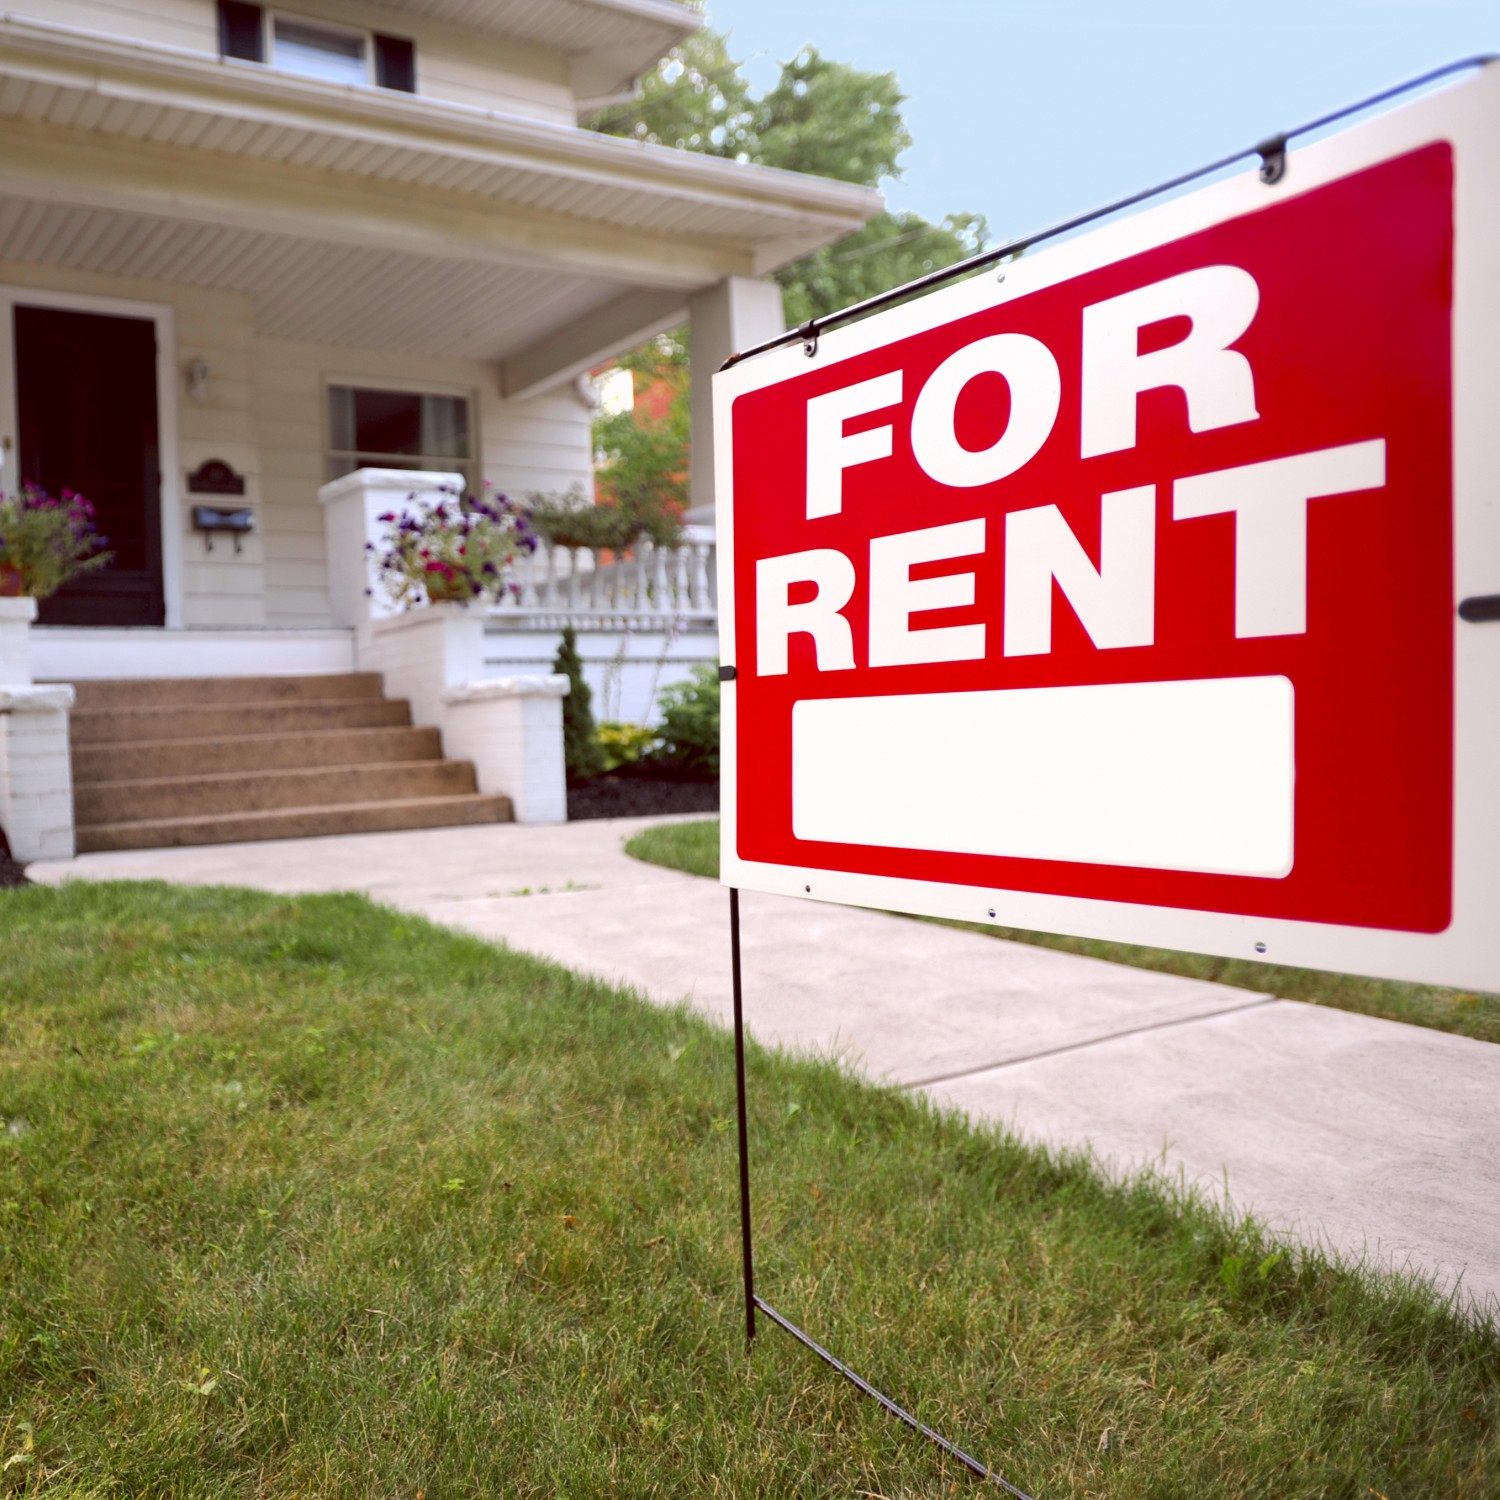 Can You Rent Shortly After Being Evicted? - HotPads Blog